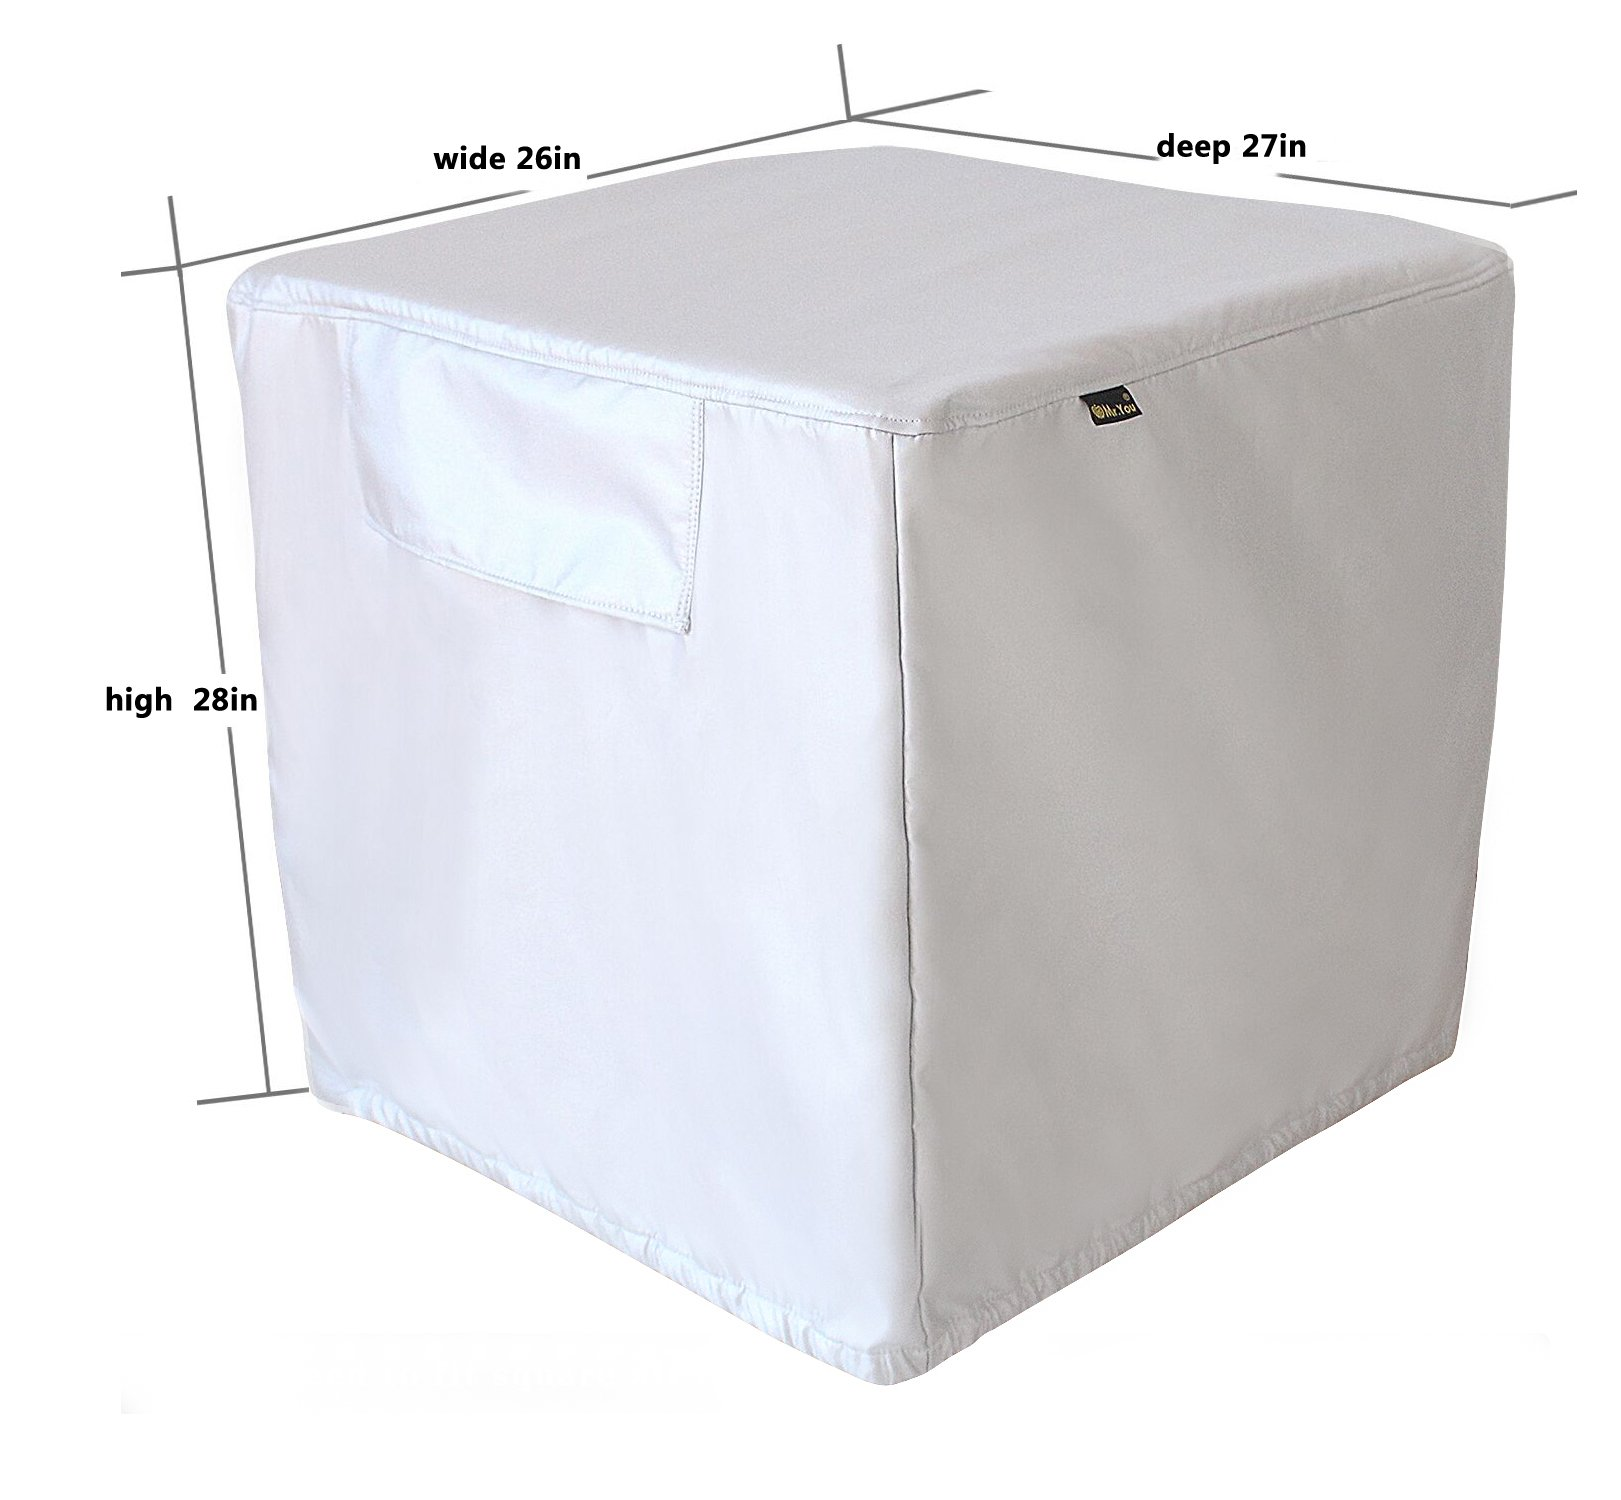 Mr.You Square Air Conditioner Cover Heavy Duty Waterproof Durable For Winter outdoor 5 YR Warranty Year Around Protection Silver D27W26H28in by Mr.You (Image #2)